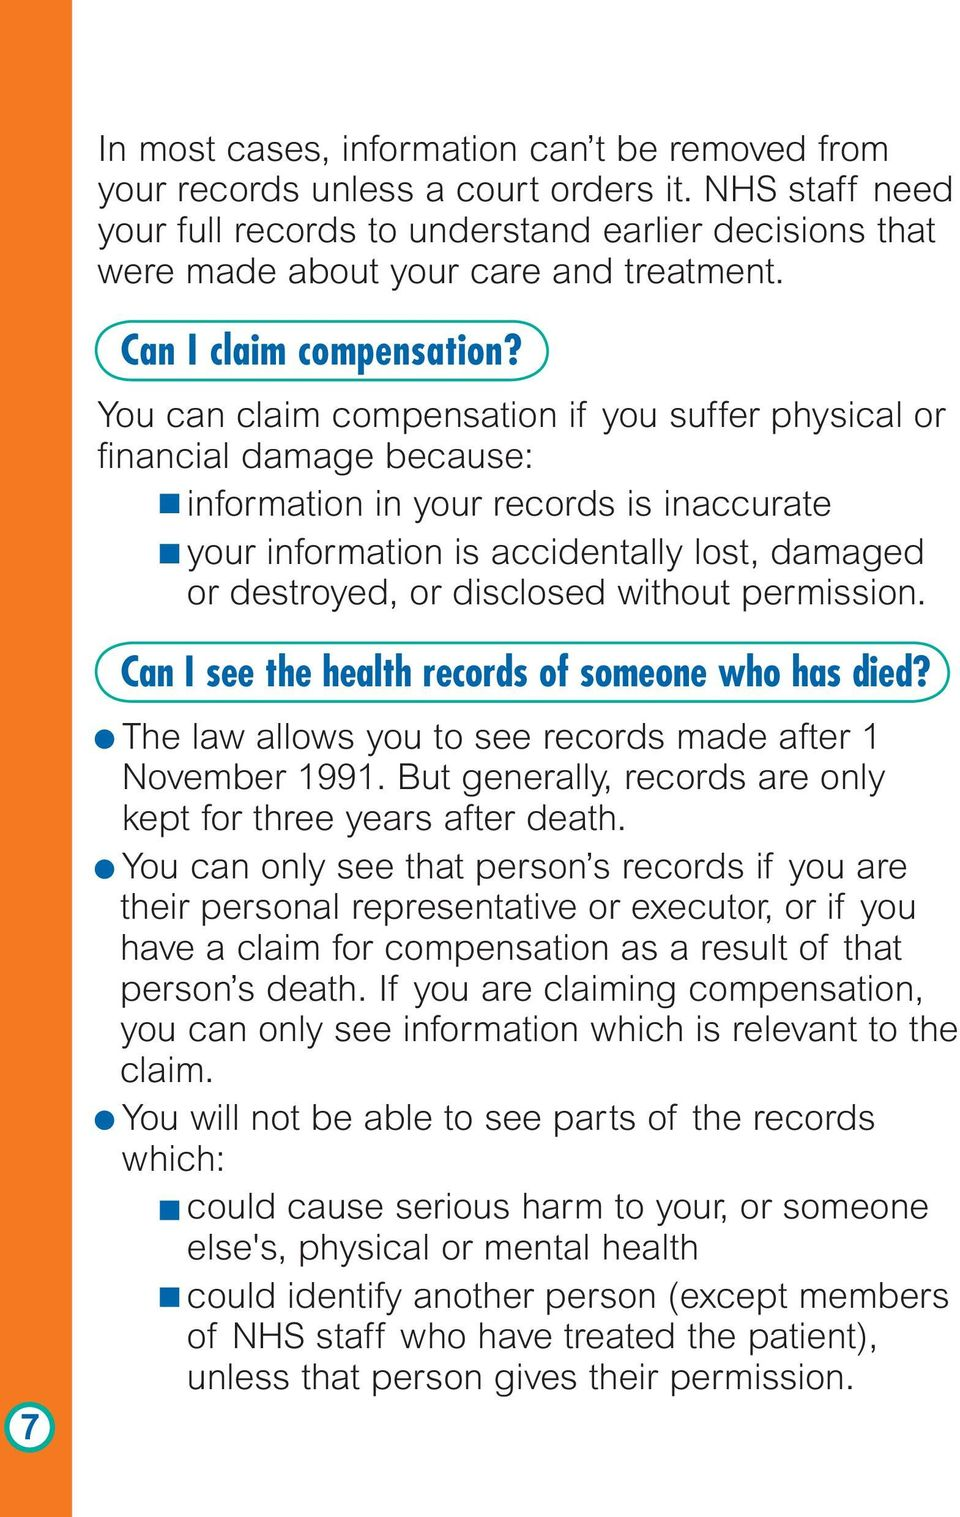 You can claim compensation if you suffer physical or financial damage because: information in your records is inaccurate your information is accidentally lost, damaged or destroyed, or disclosed